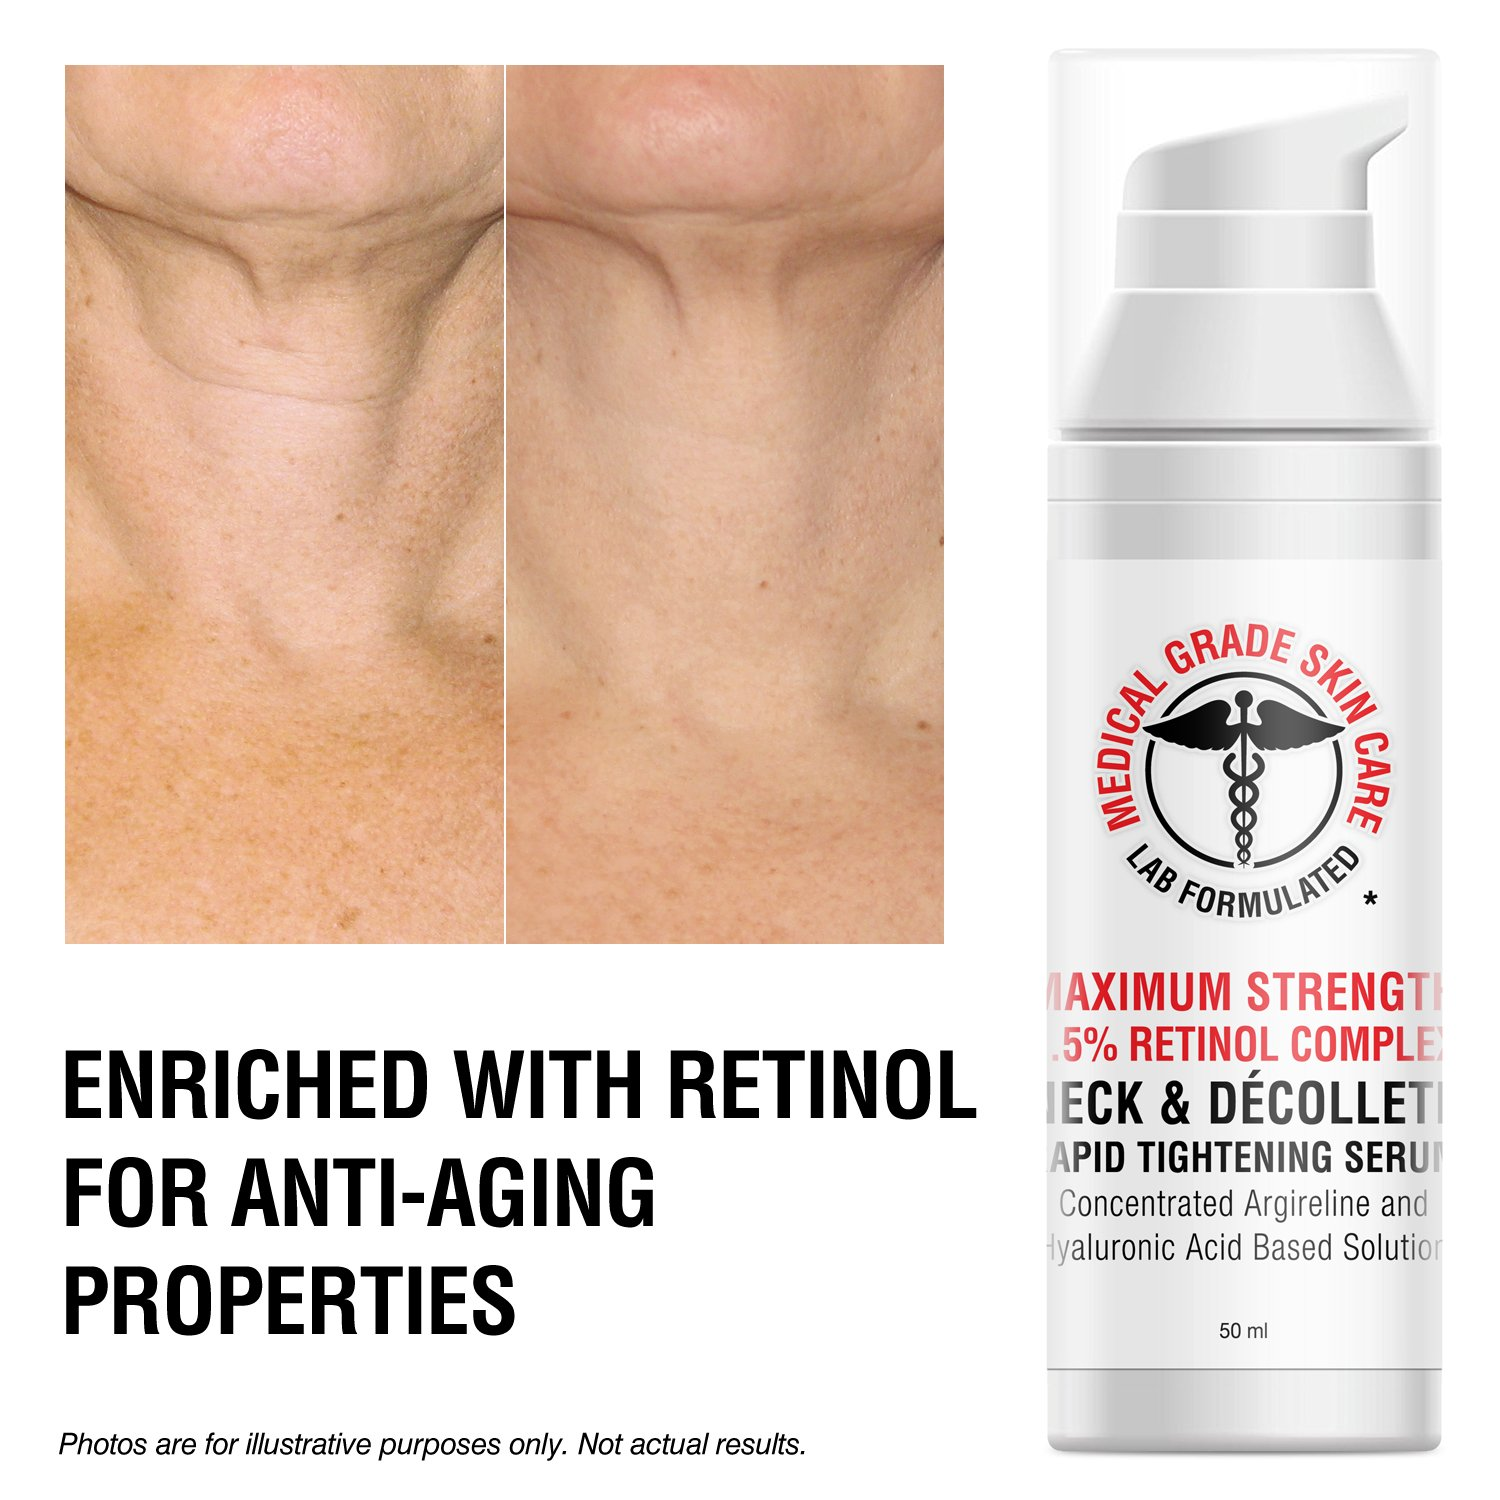 Neck & Décolleté Tightening Serum   Best Anti-Aging Firming Neck Cream Made With Maximum Strength 2.5% Retinol Complex   Concentrated With Argireline and Hyaluronic Acid by SkinPro (Image #3)